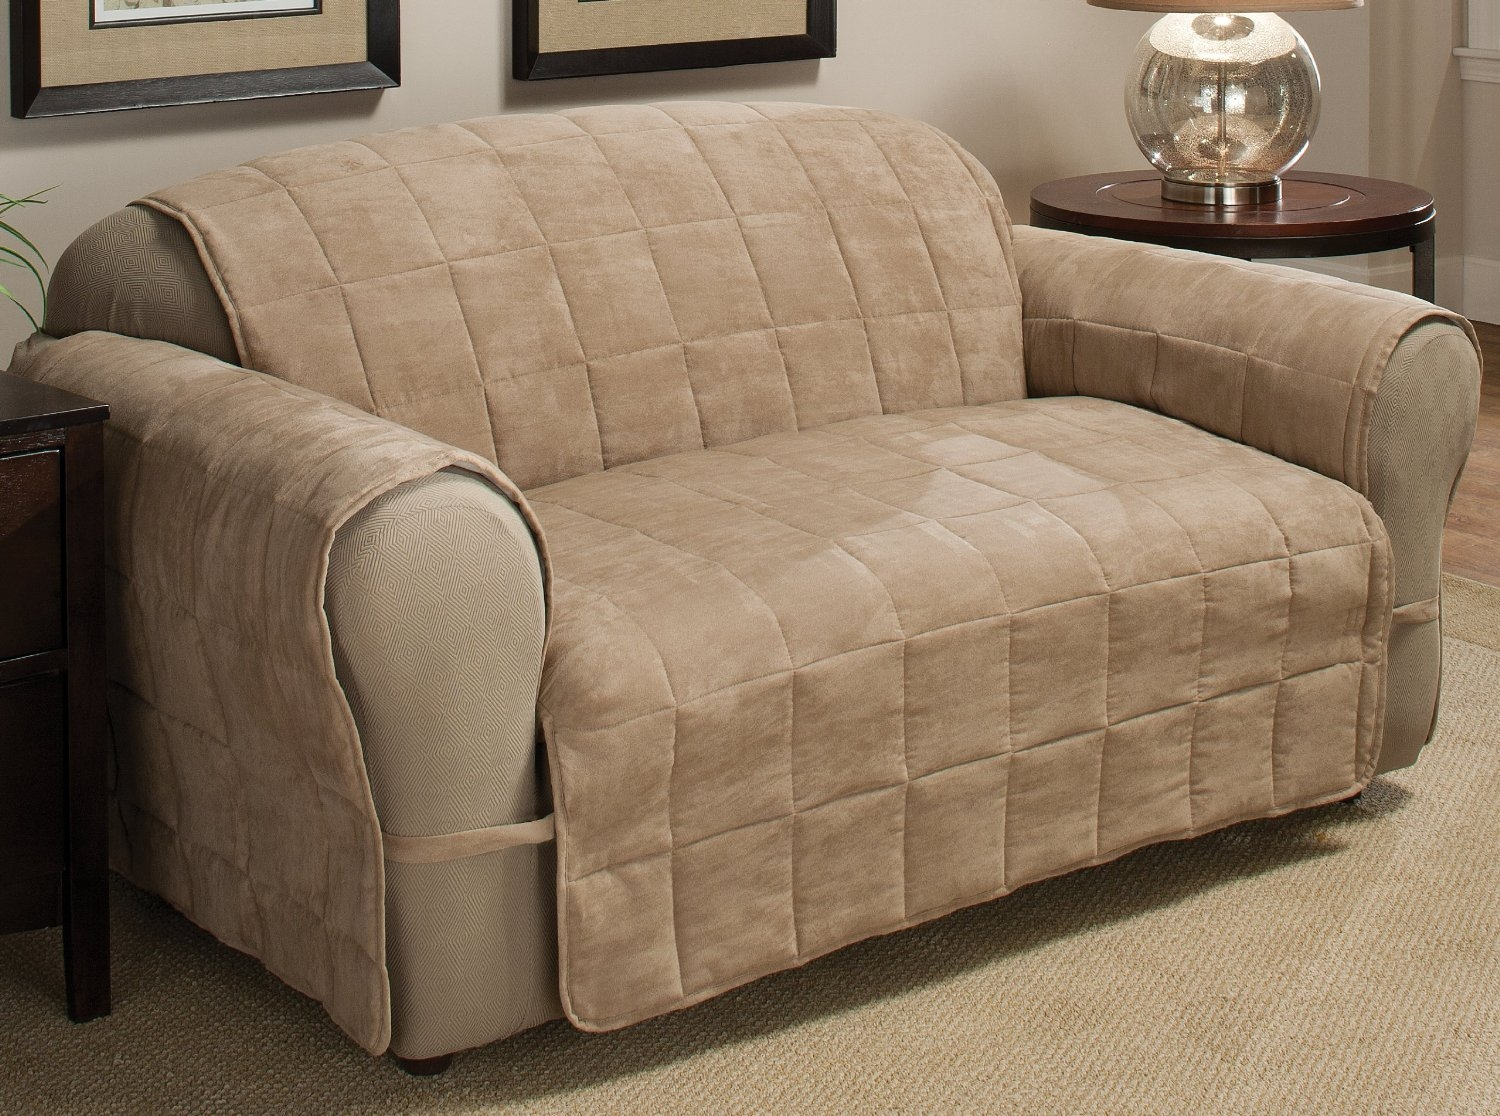 Decor Futon Slipcover Futon Covers Walmart Slip Covers For Chairs Pertaining To Covers For Sofas And Chairs (View 6 of 15)